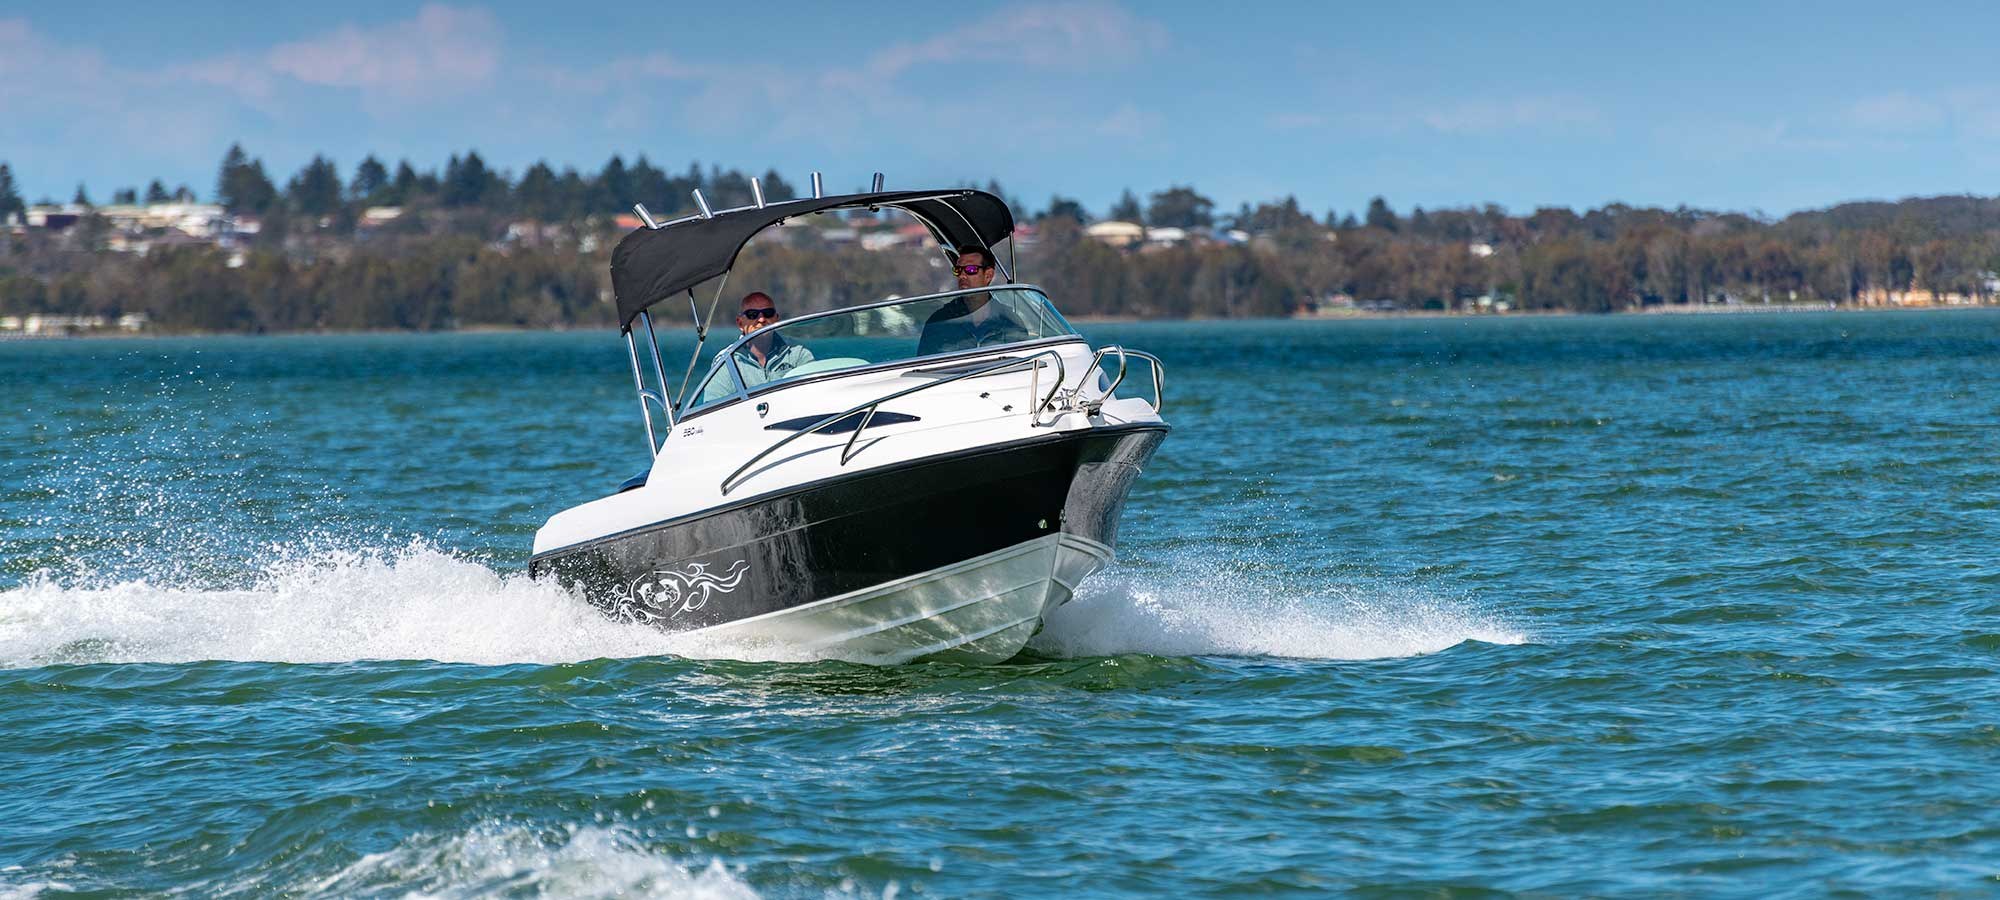 hight resolution of  lewis is australia s oldest ski boat manufacturer established in the early 1930 s a test drive is all it takes to recognize the sports car handling and